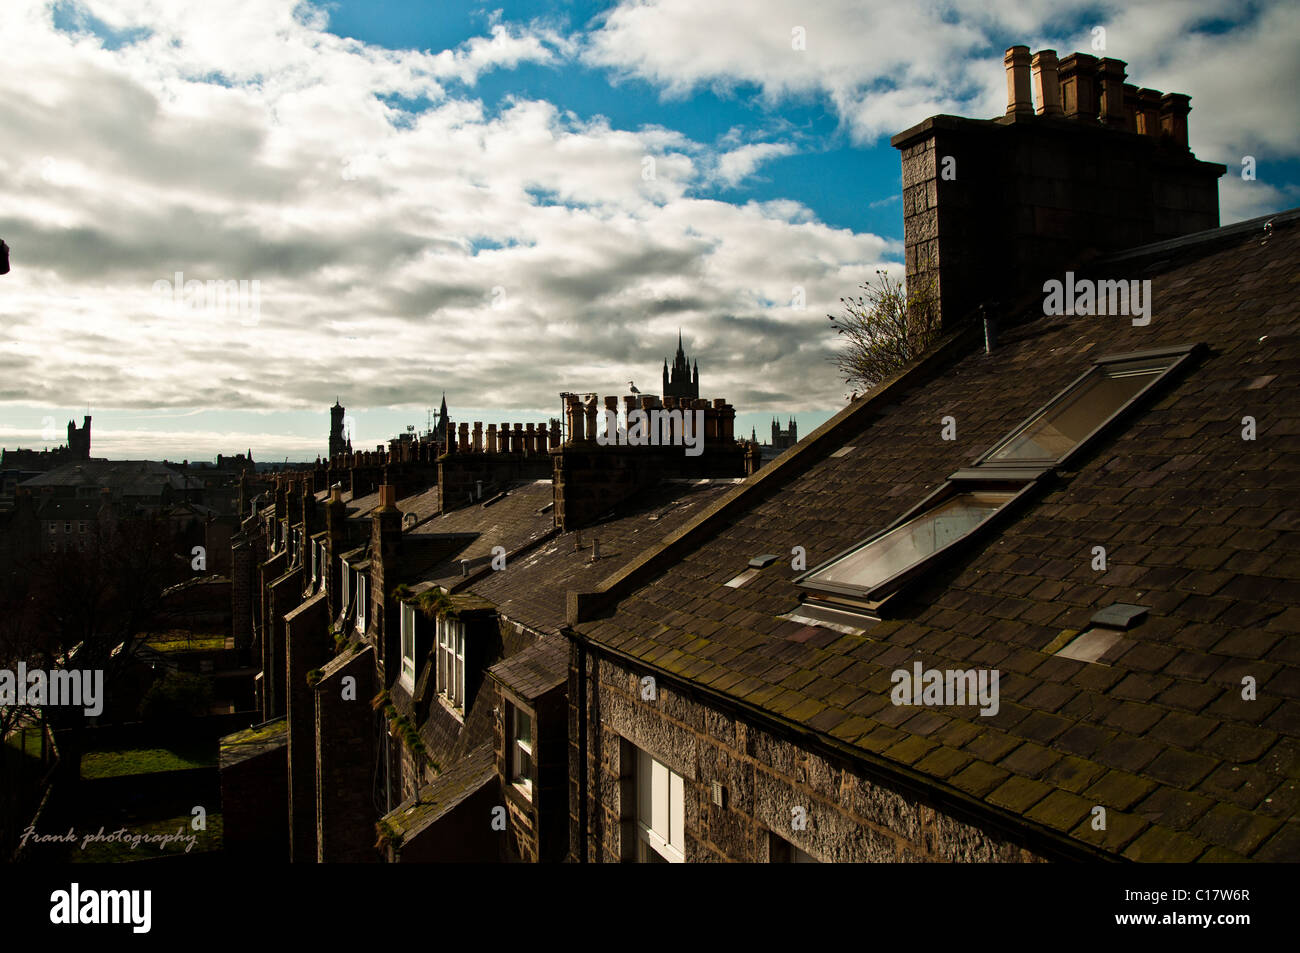 The bright blue sky hidden behind the clouds ... North... - Stock Image